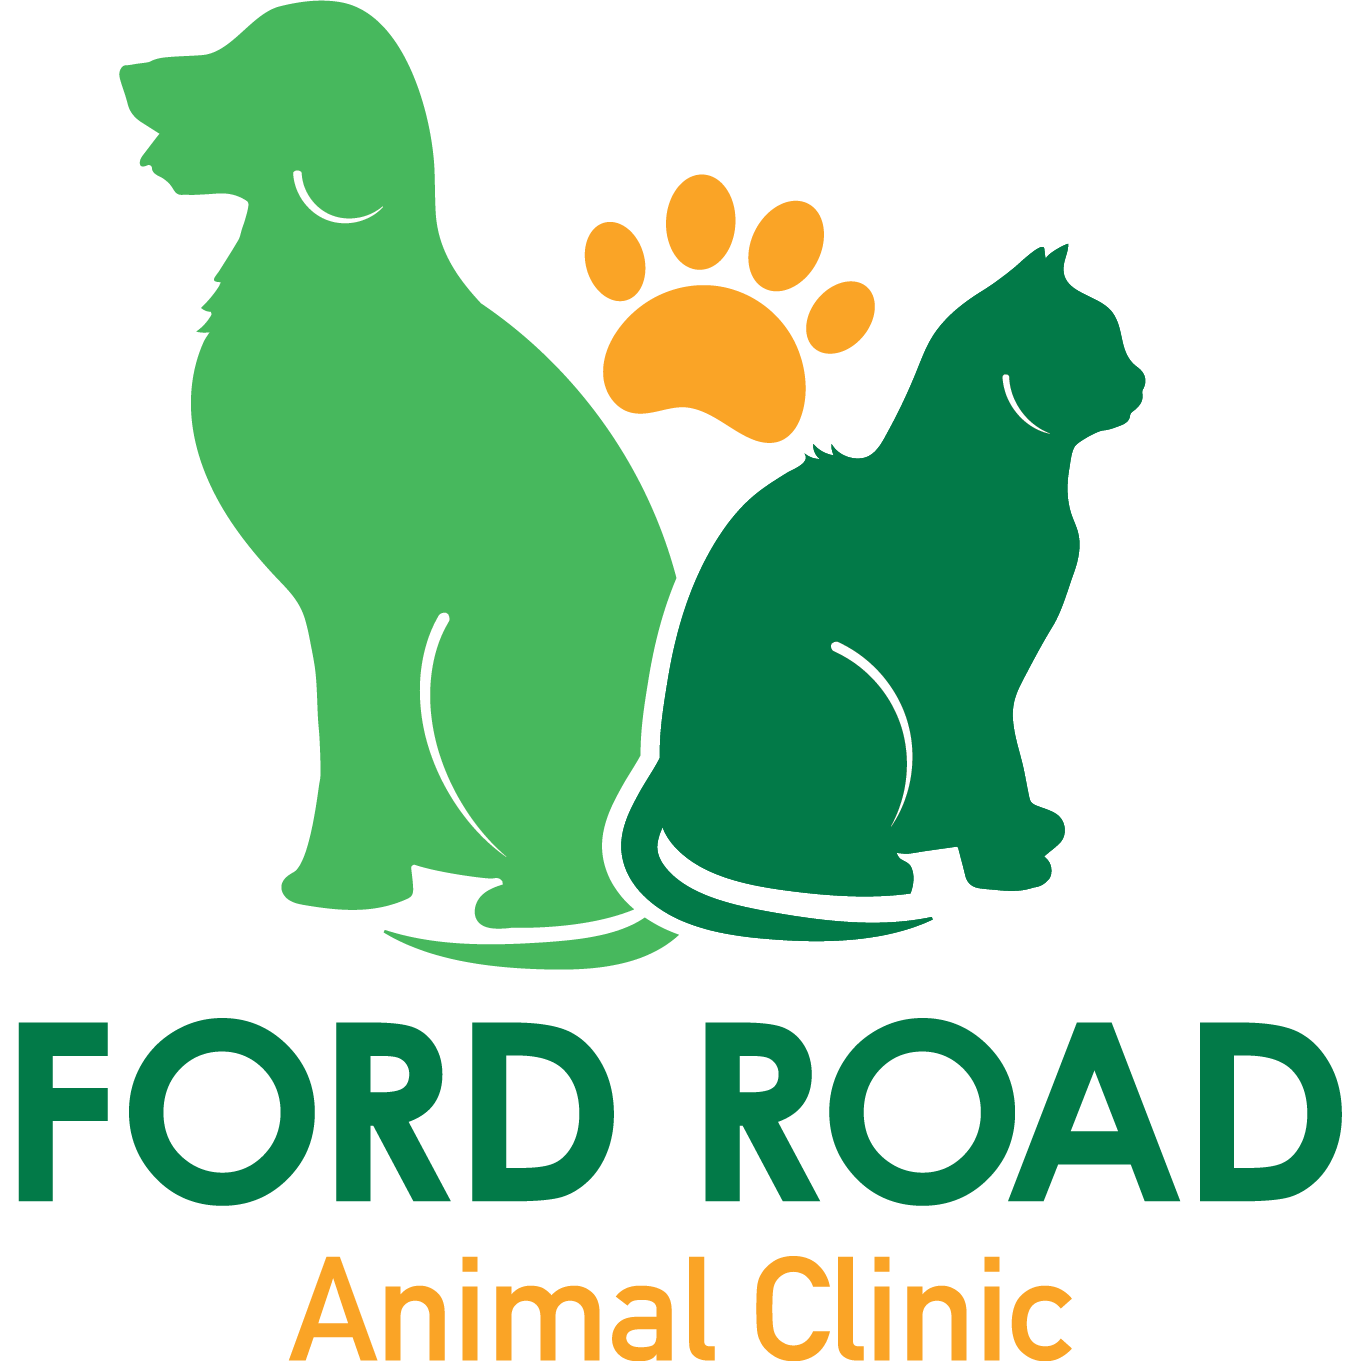 Ford Road Animal Clinic - Dearborn Heights, MI 48127 - (313)562-3422 | ShowMeLocal.com